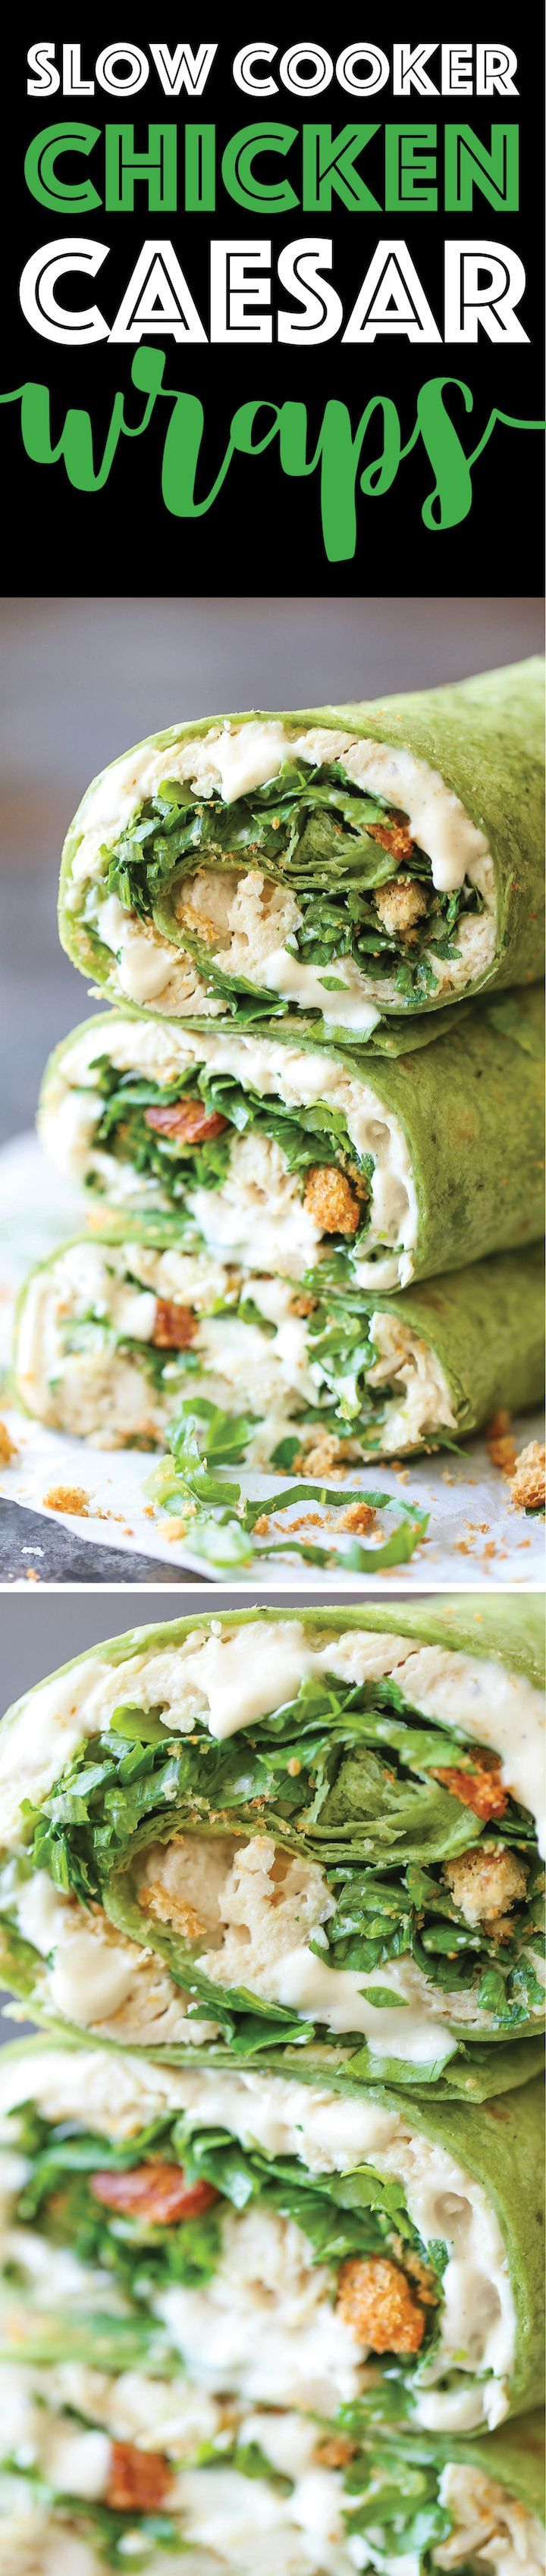 Slow Cooker Chicken Caesar Wraps - Everyone's favorite wrap made right in the slow cooker! The chicken is so tender, juicy and melt-in-your-mouth amazing!